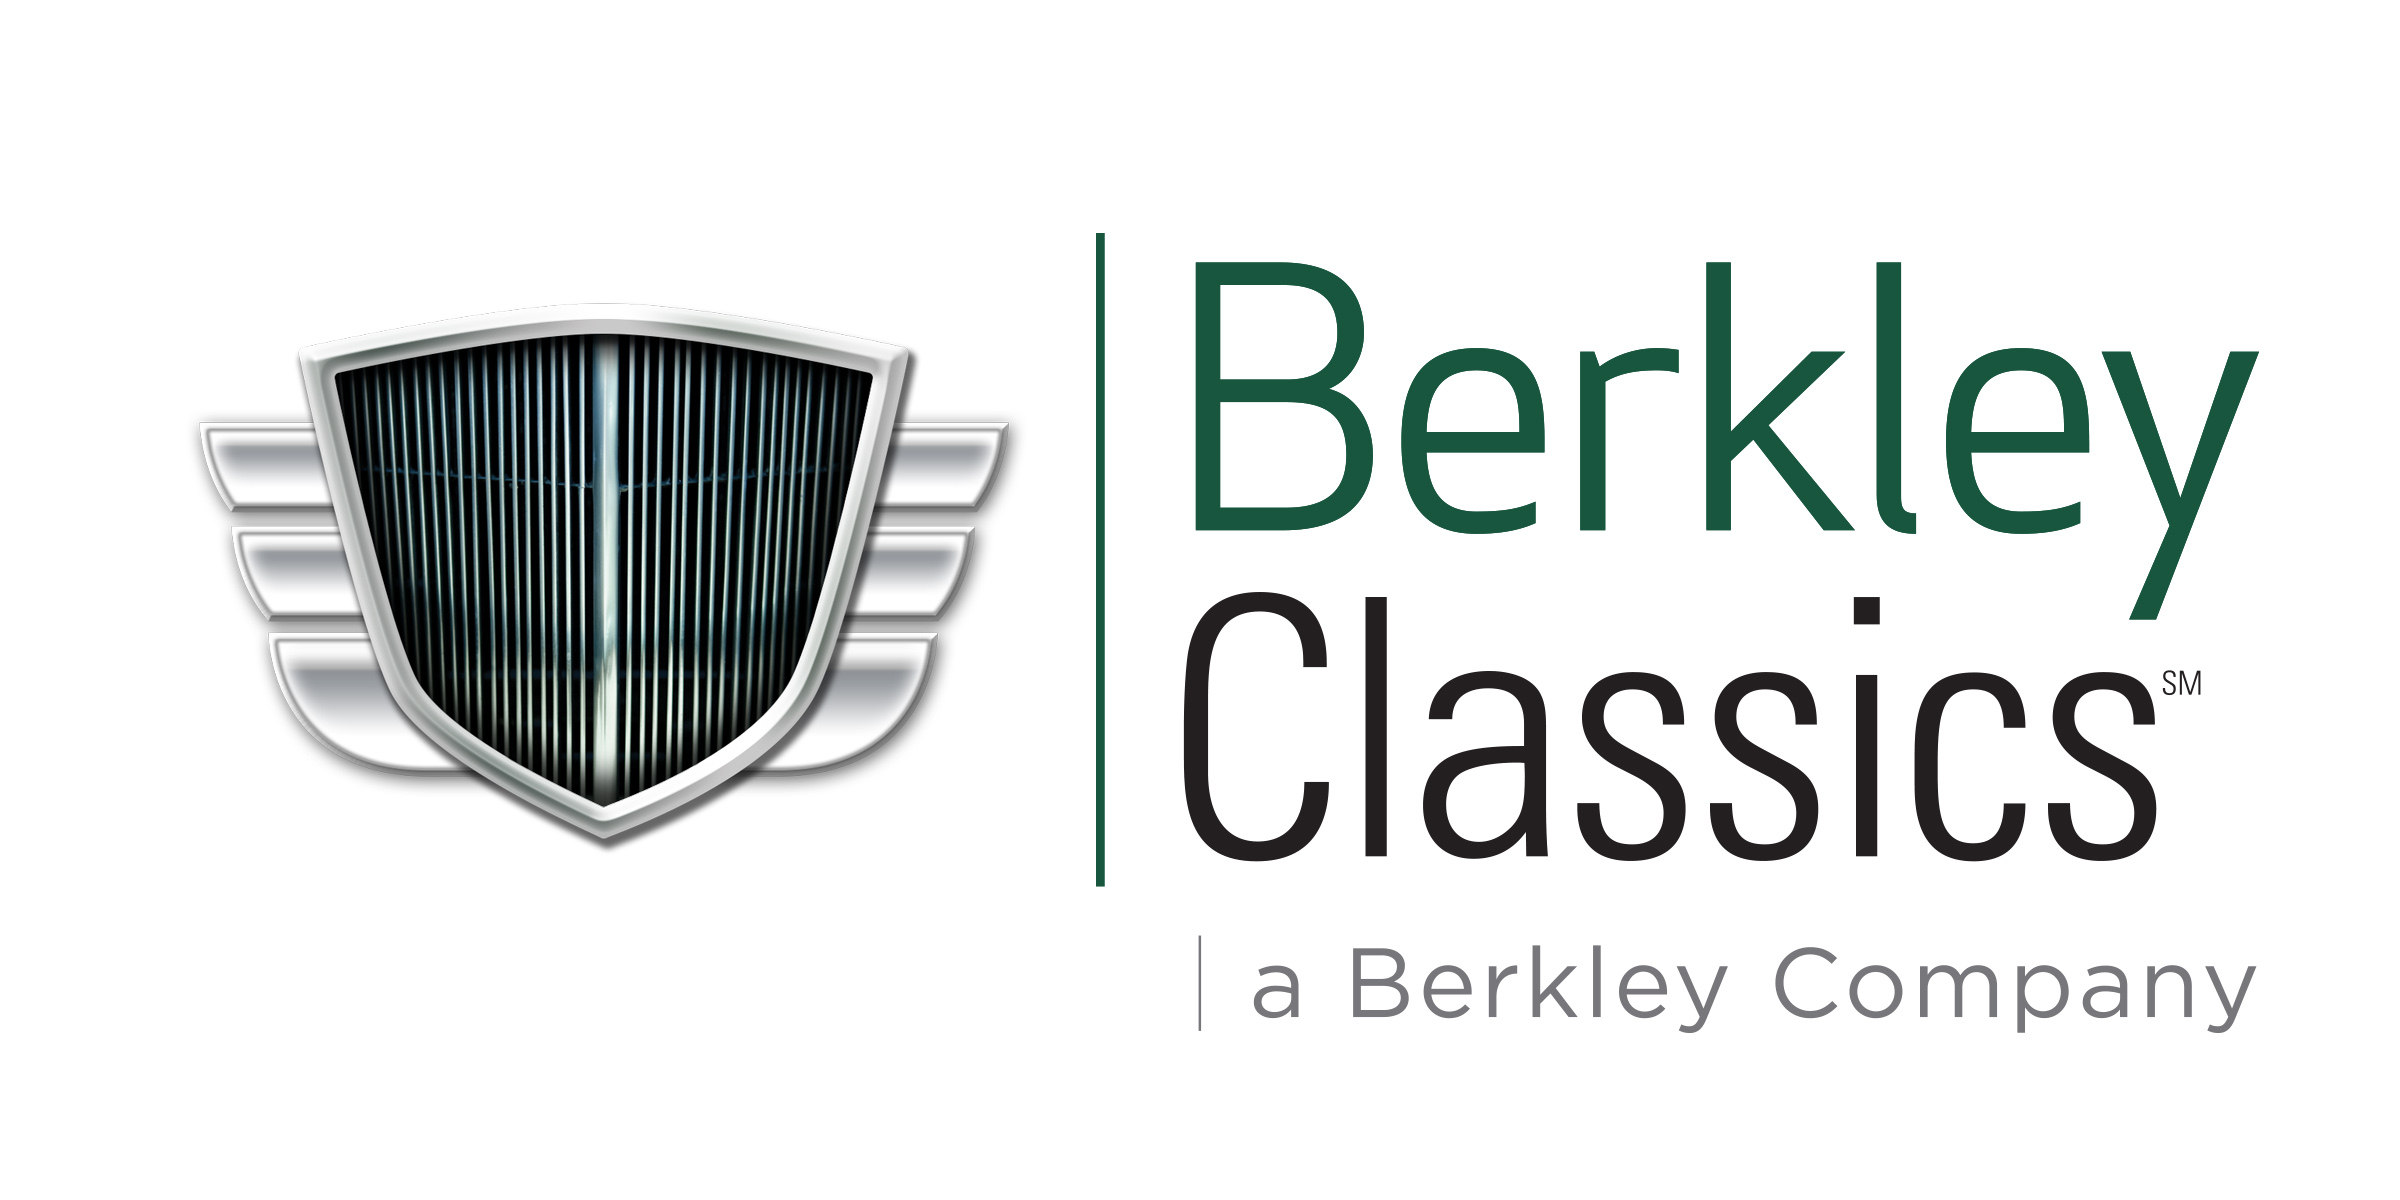 Berkley Classics Insurance